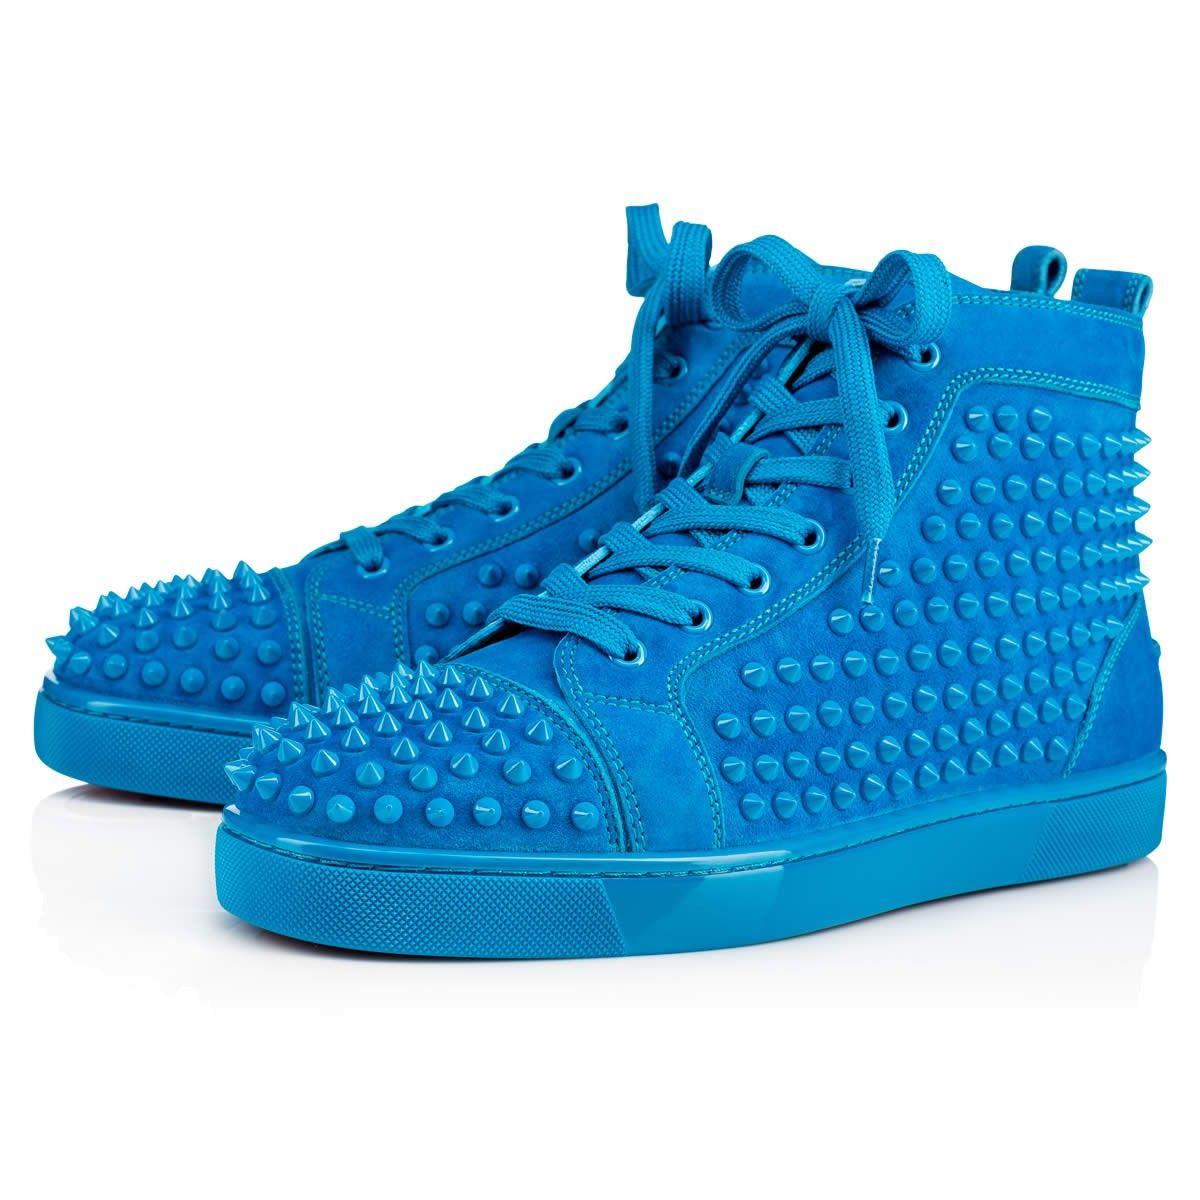 401368e8163c7 CHRISTIAN LOUBOUTIN Louis Spikes Men S Flat Egyptian Blue Suede - Men Shoes  - Christian Louboutin.  christianlouboutin  shoes